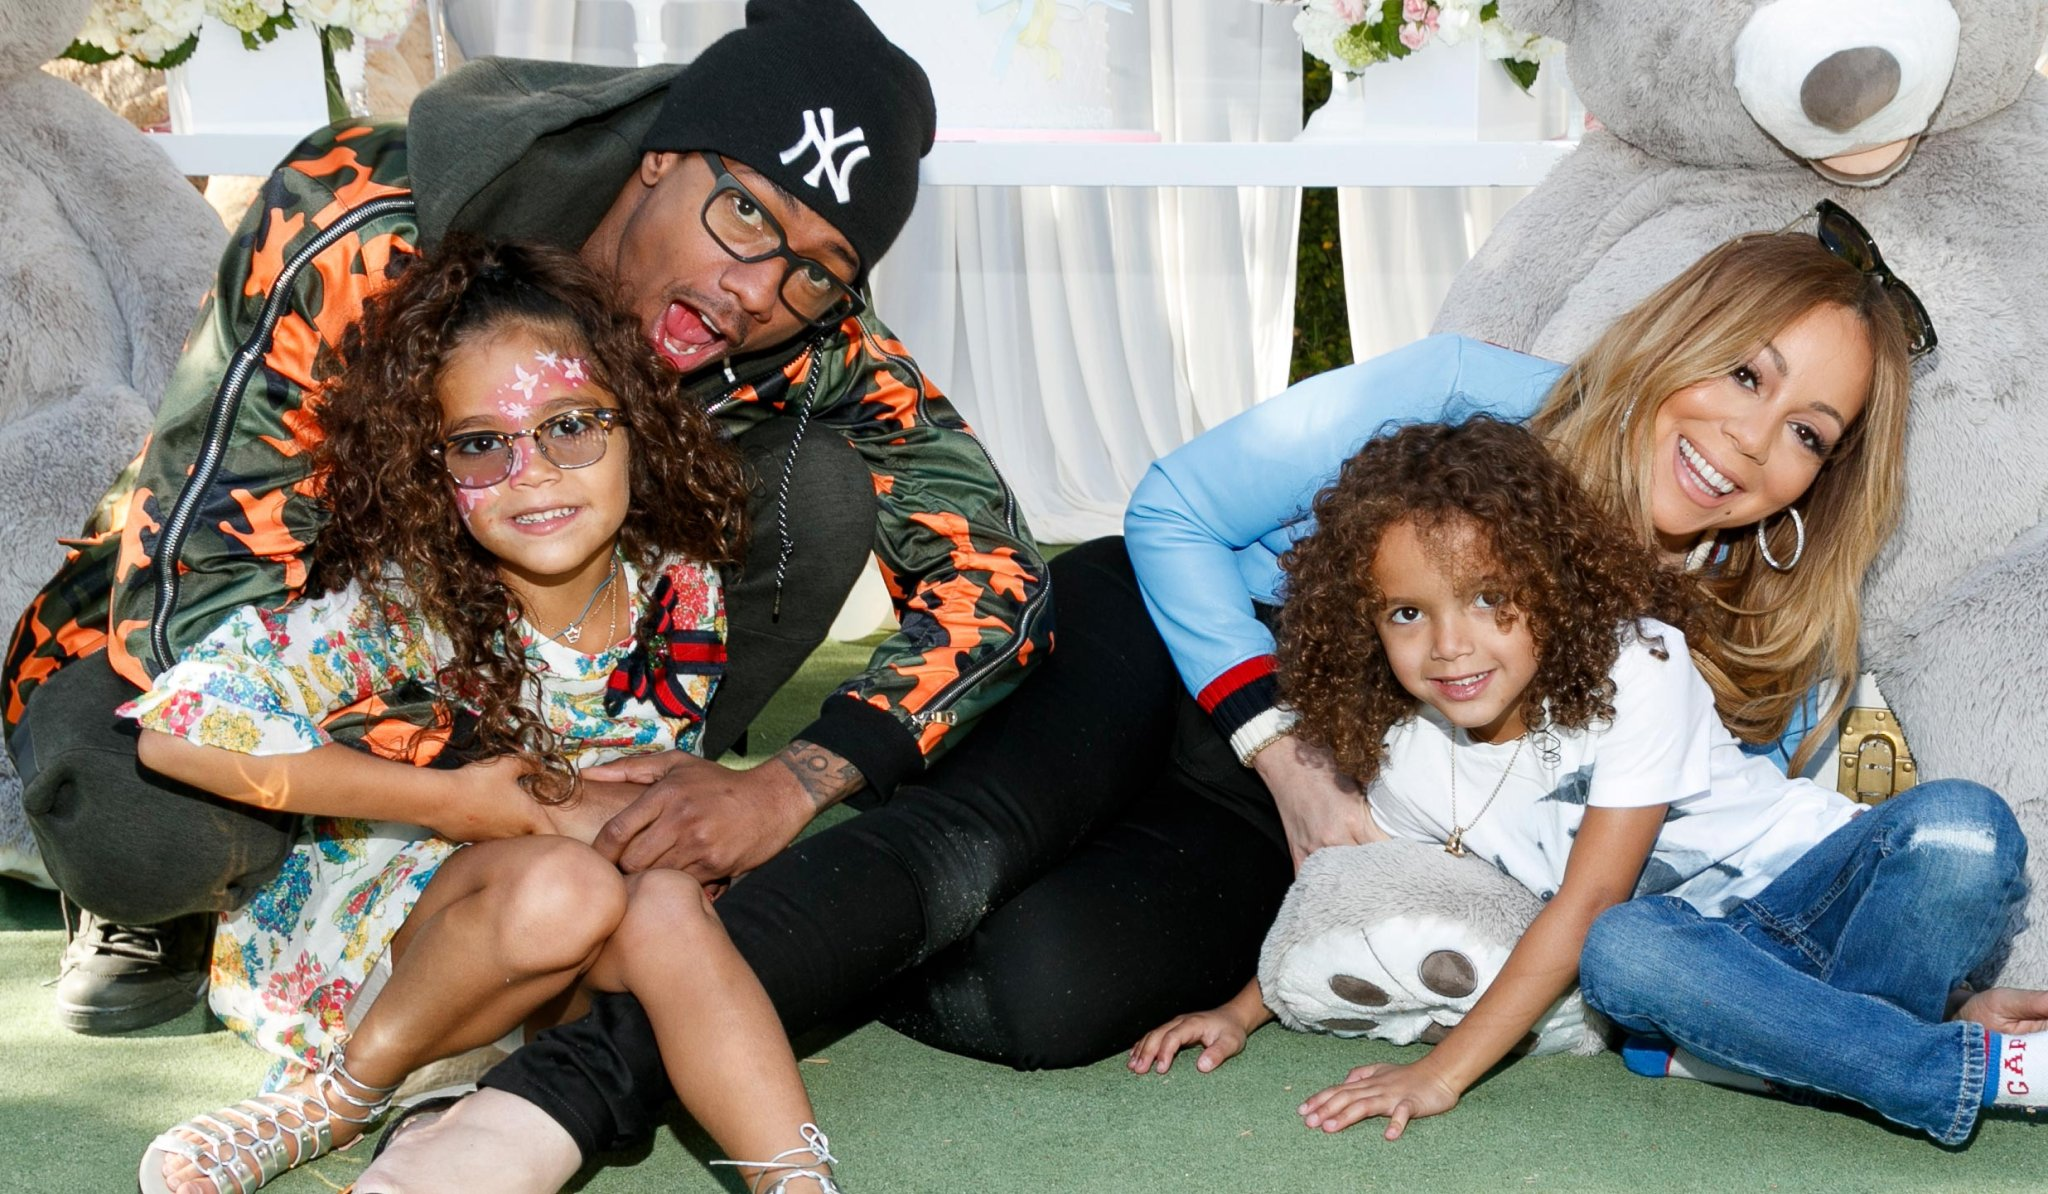 Get to Know Nick Cannon's 7 Children and Their Mothers (Plus, Details on His Newborn Son)